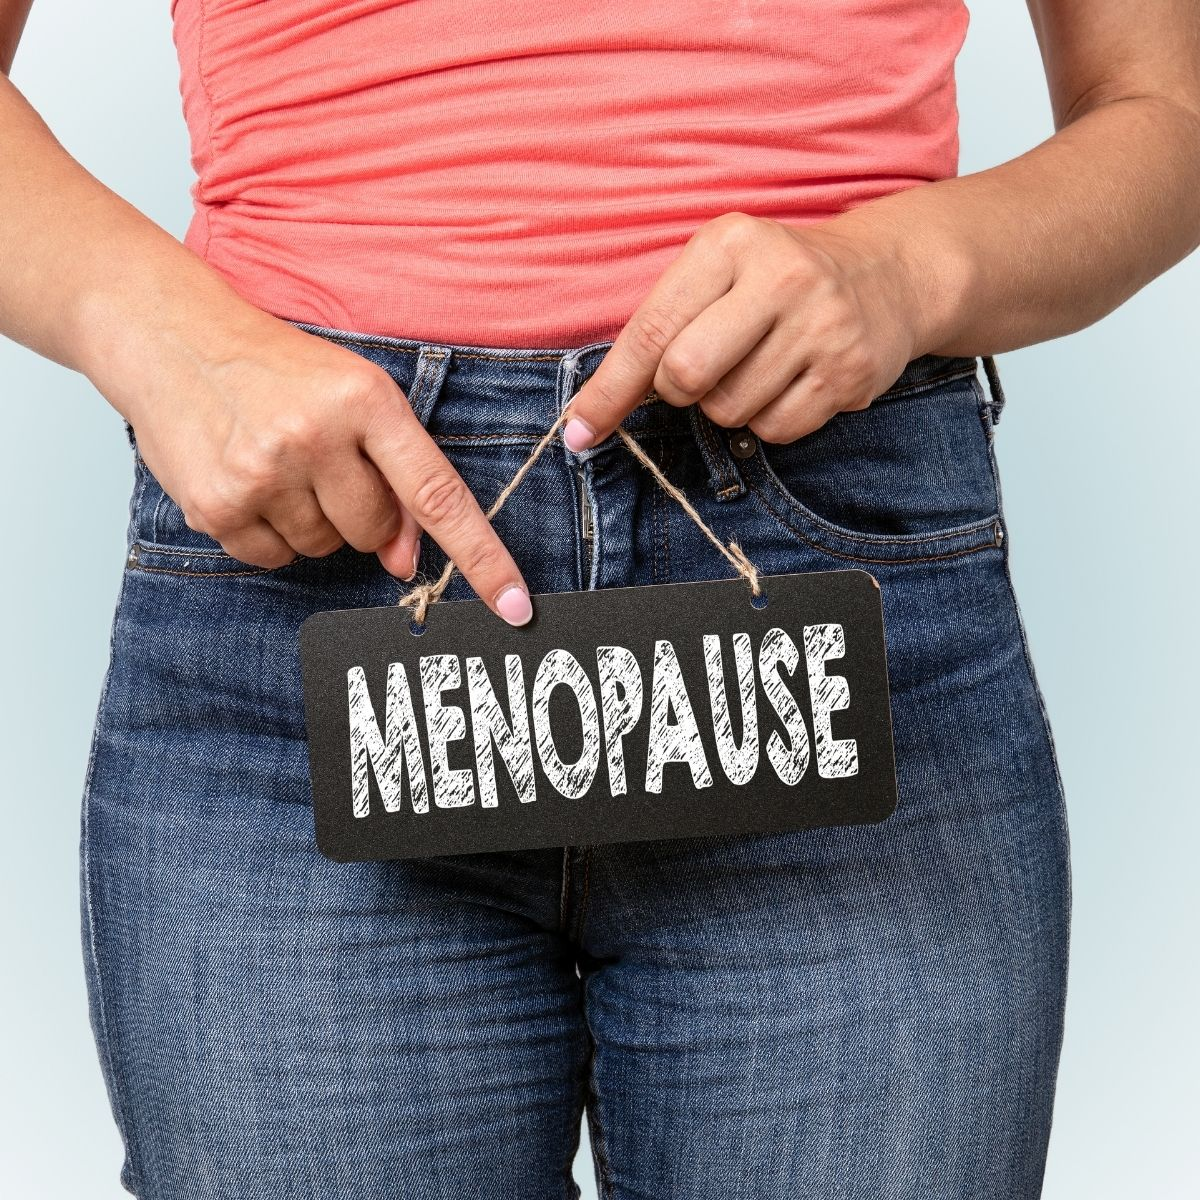 women is jeans and pink tip pointing to a sign she is holding that states menopause